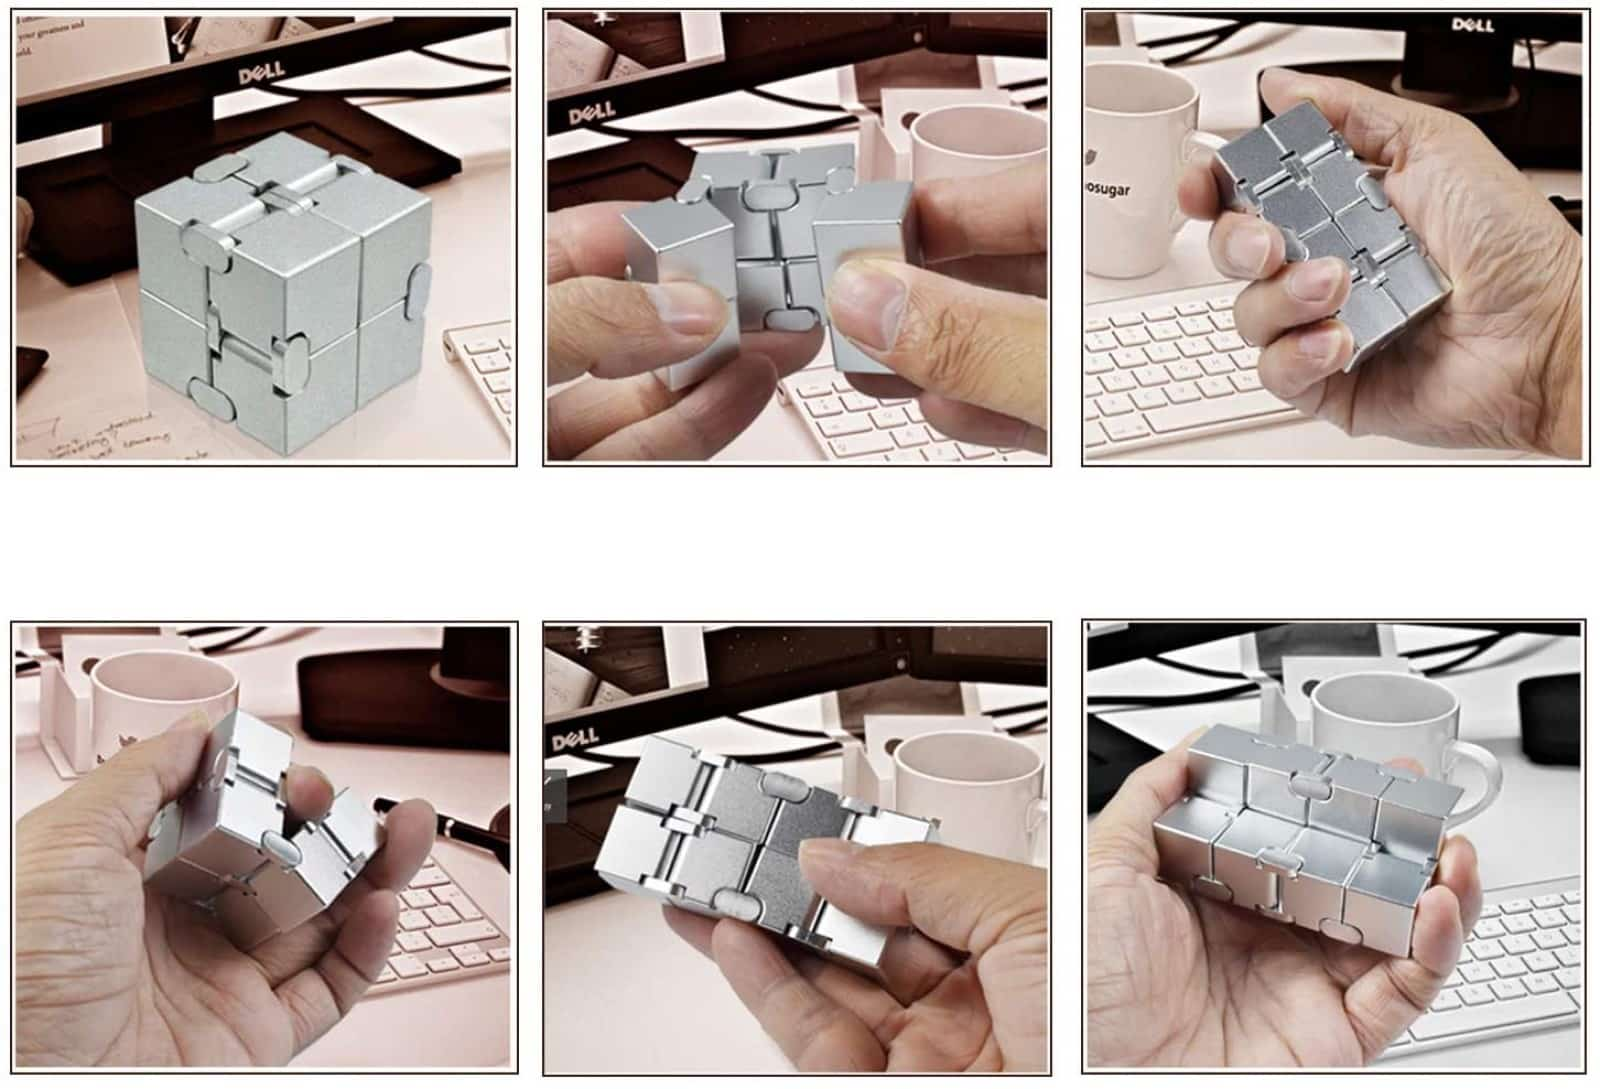 infinity cube being manipulated by one hand